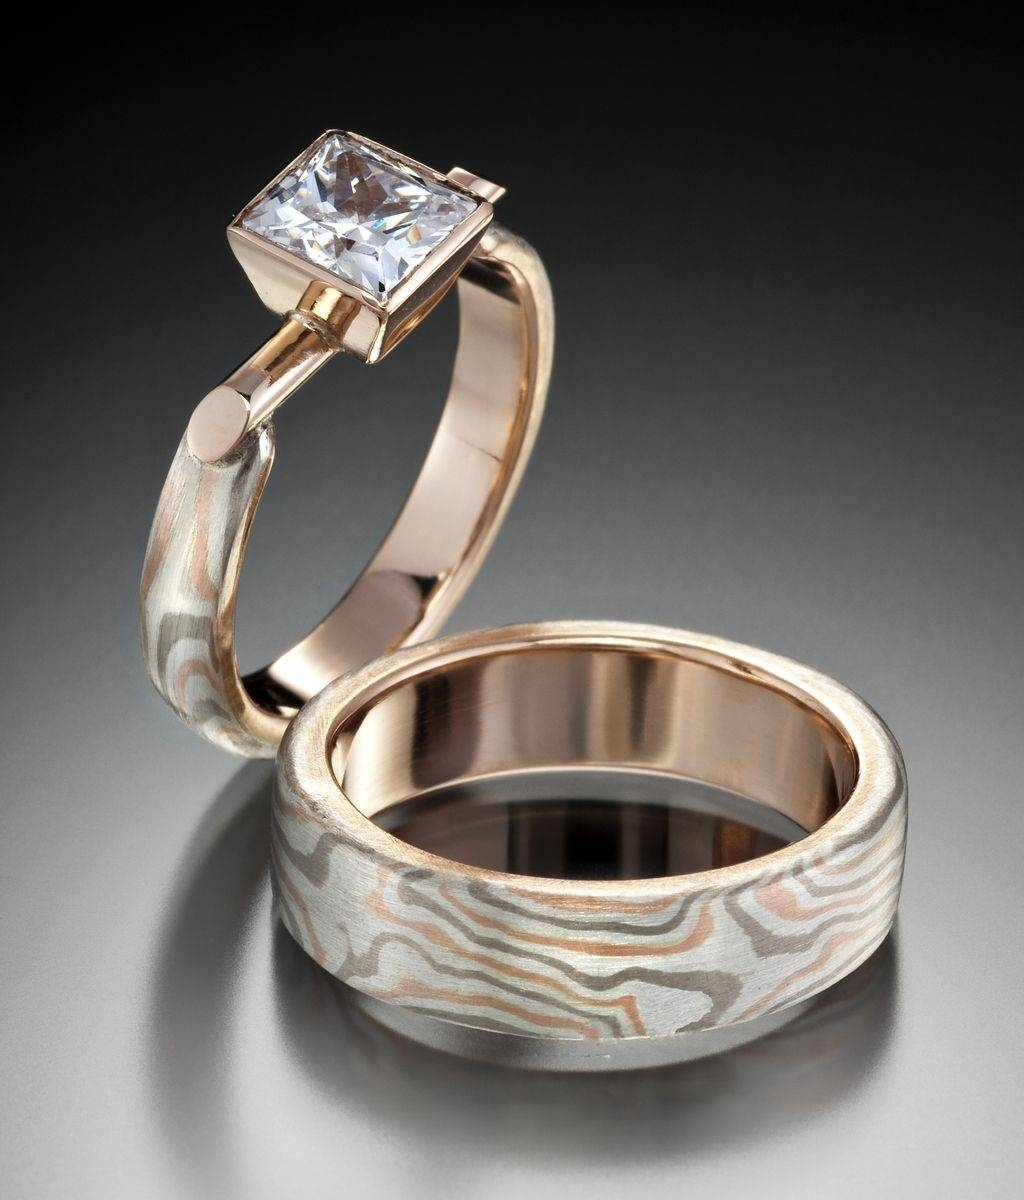 Custom Recycled Mokume Gane Wedding Set, Rolling Star Pattern Intended For Mokume Gane Engagement Rings (View 4 of 15)